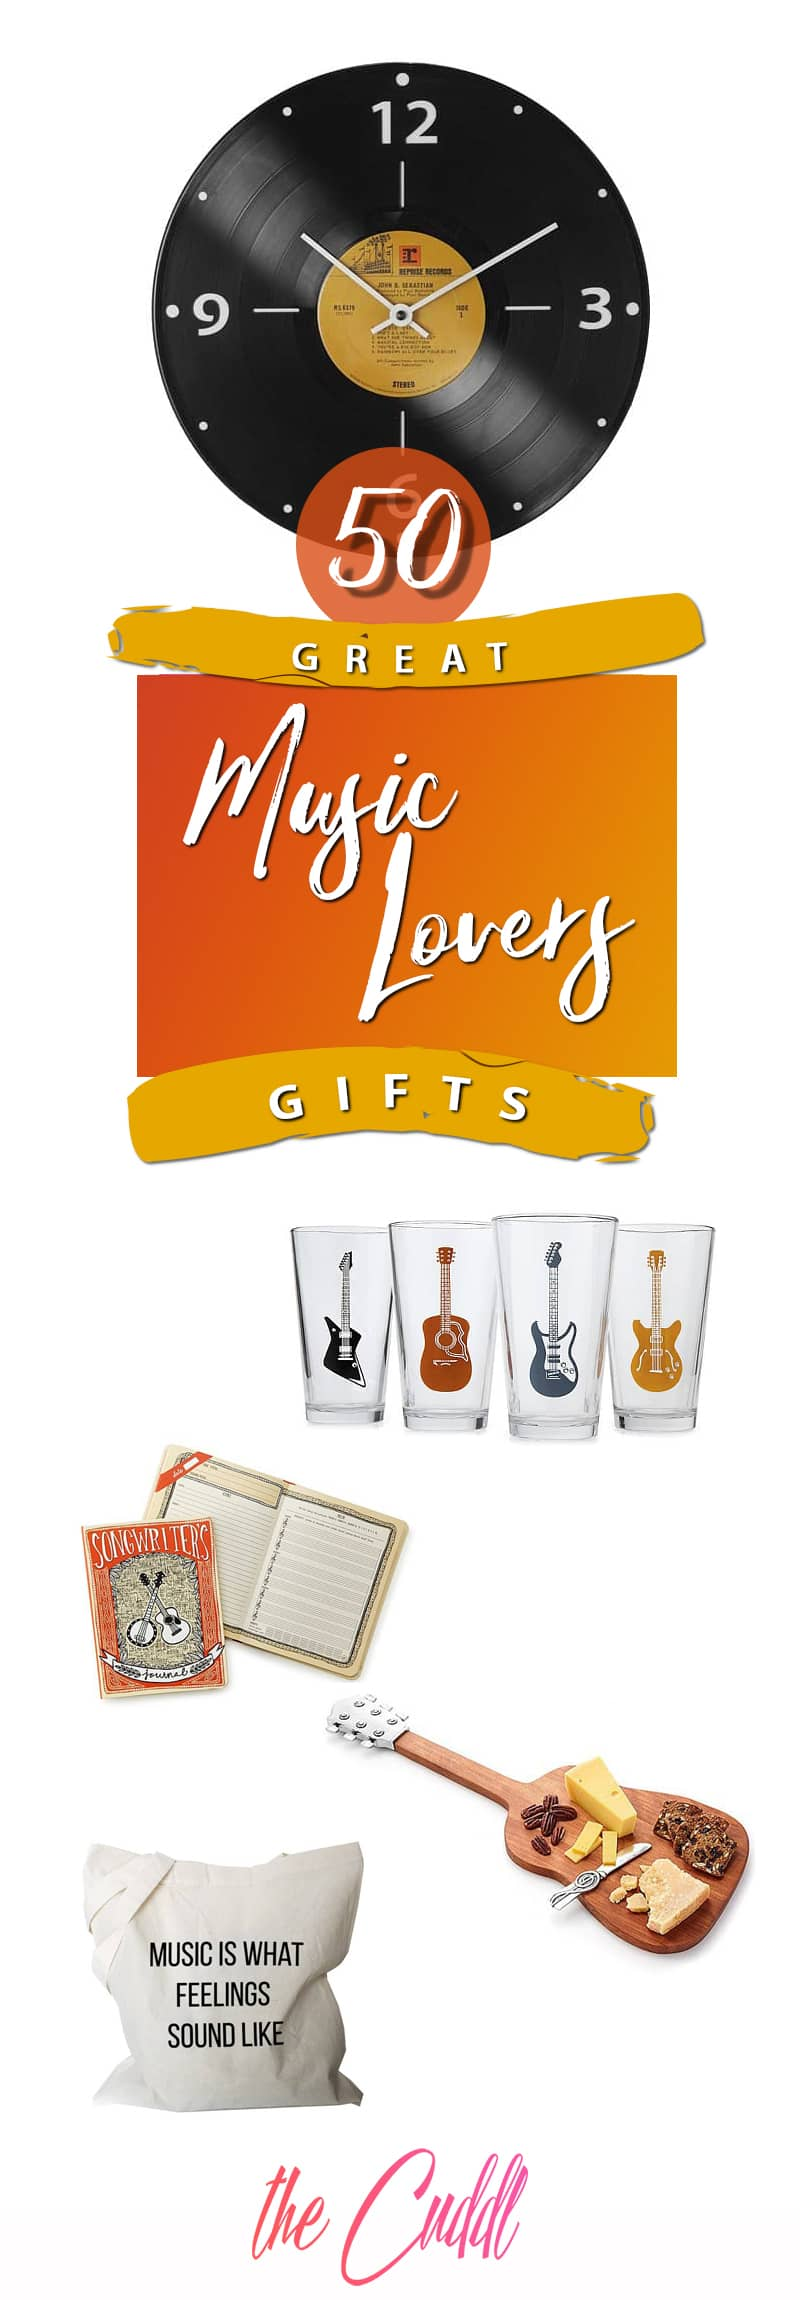 50 Gifts for Music Lovers to Find the Gifts that Will Mean the Most to Your Loved Ones